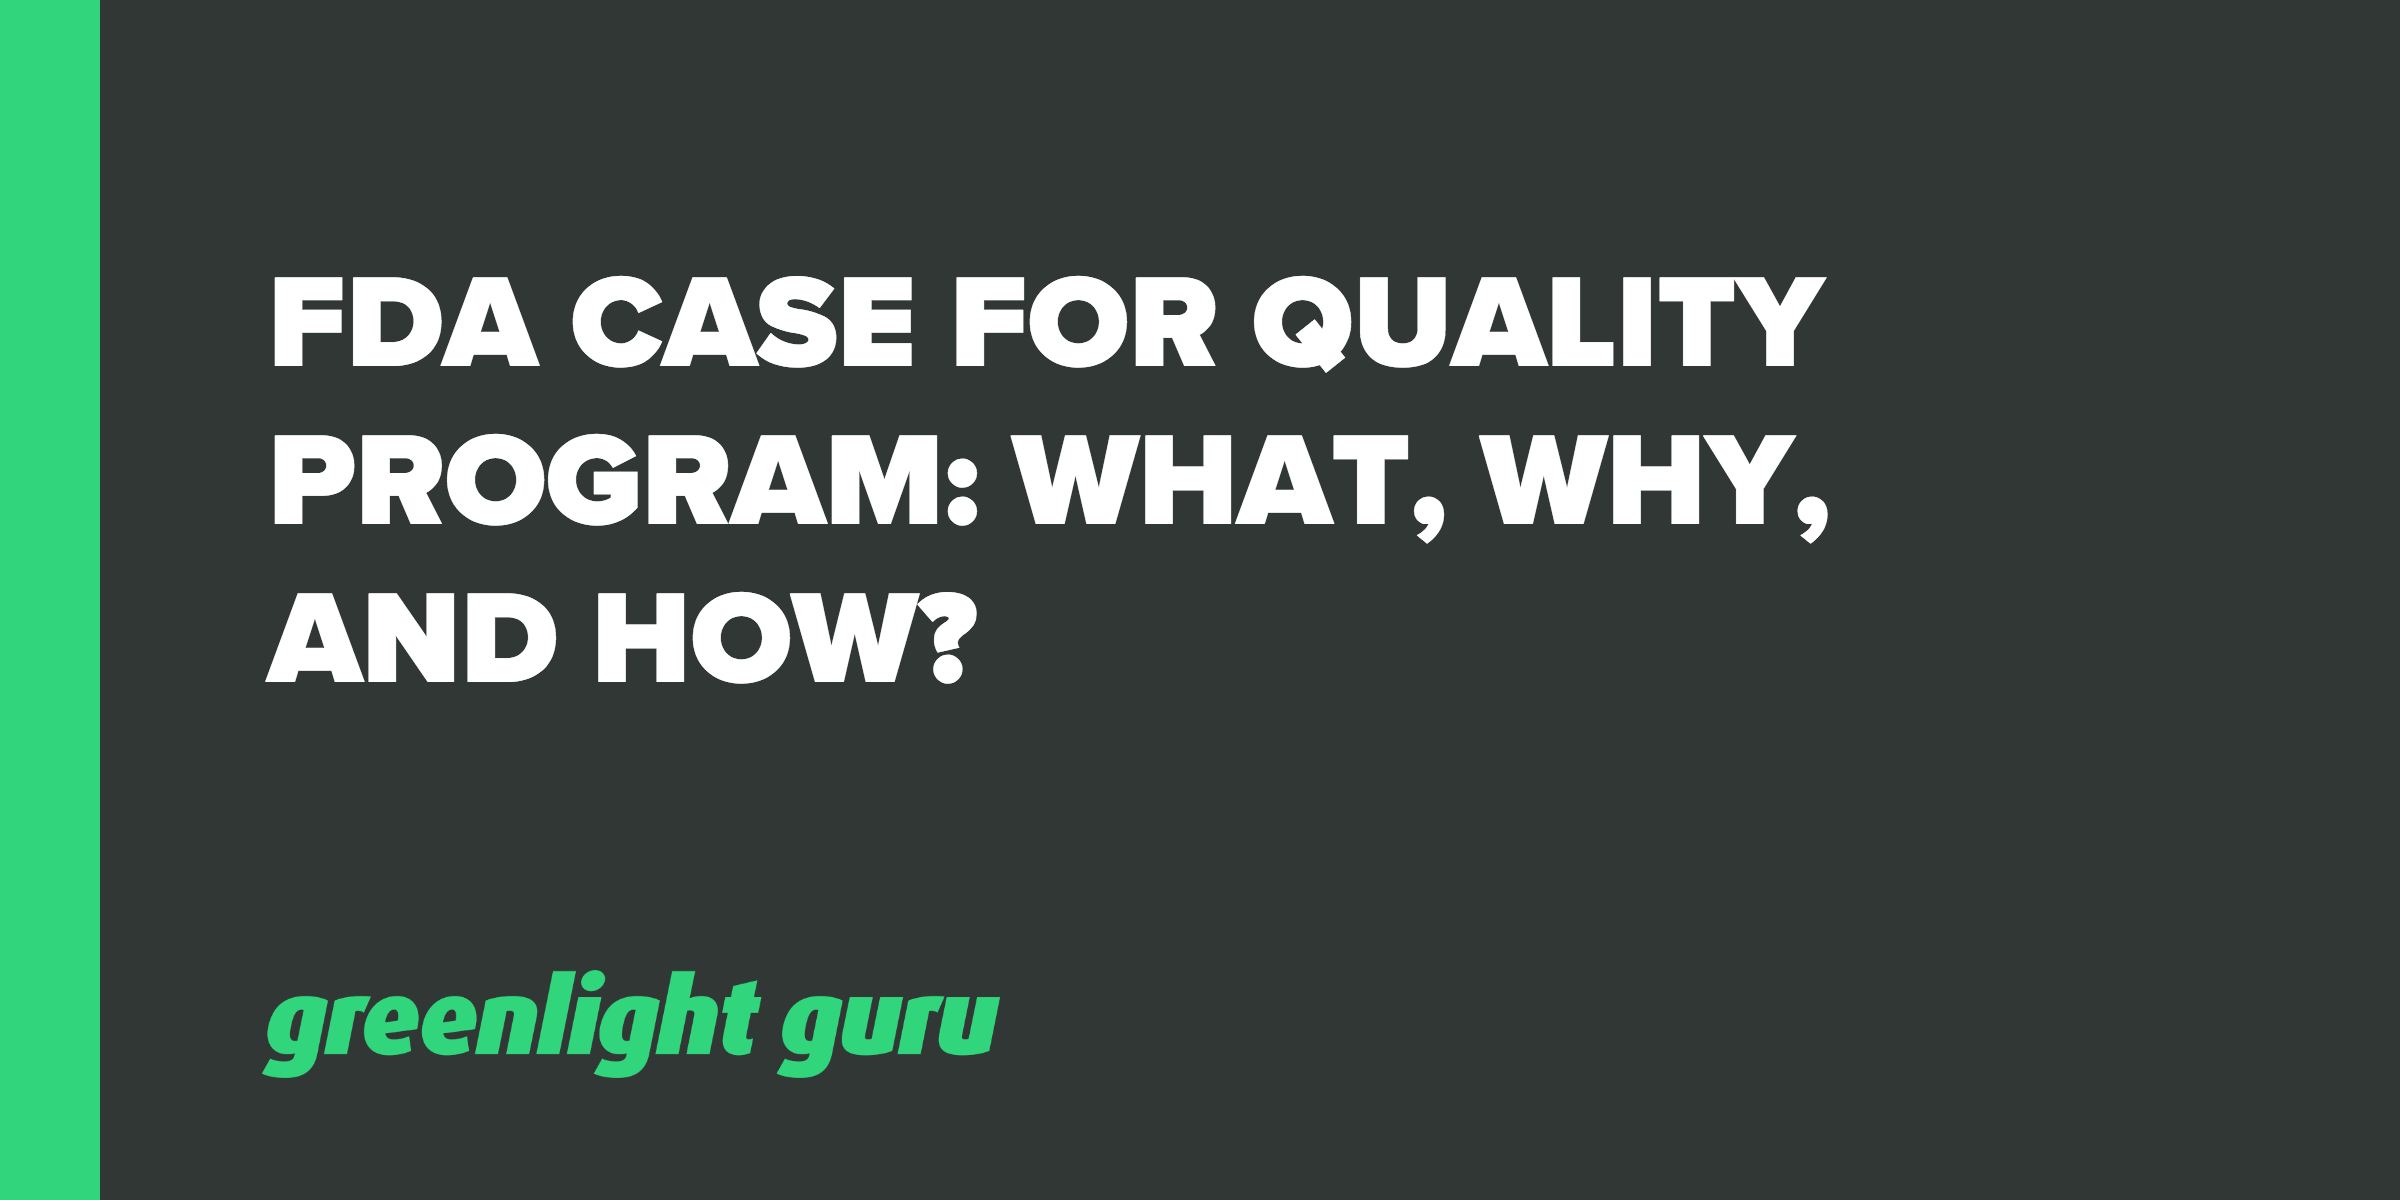 FDA Case for Quality Program: What, Why and How? - Featured Image